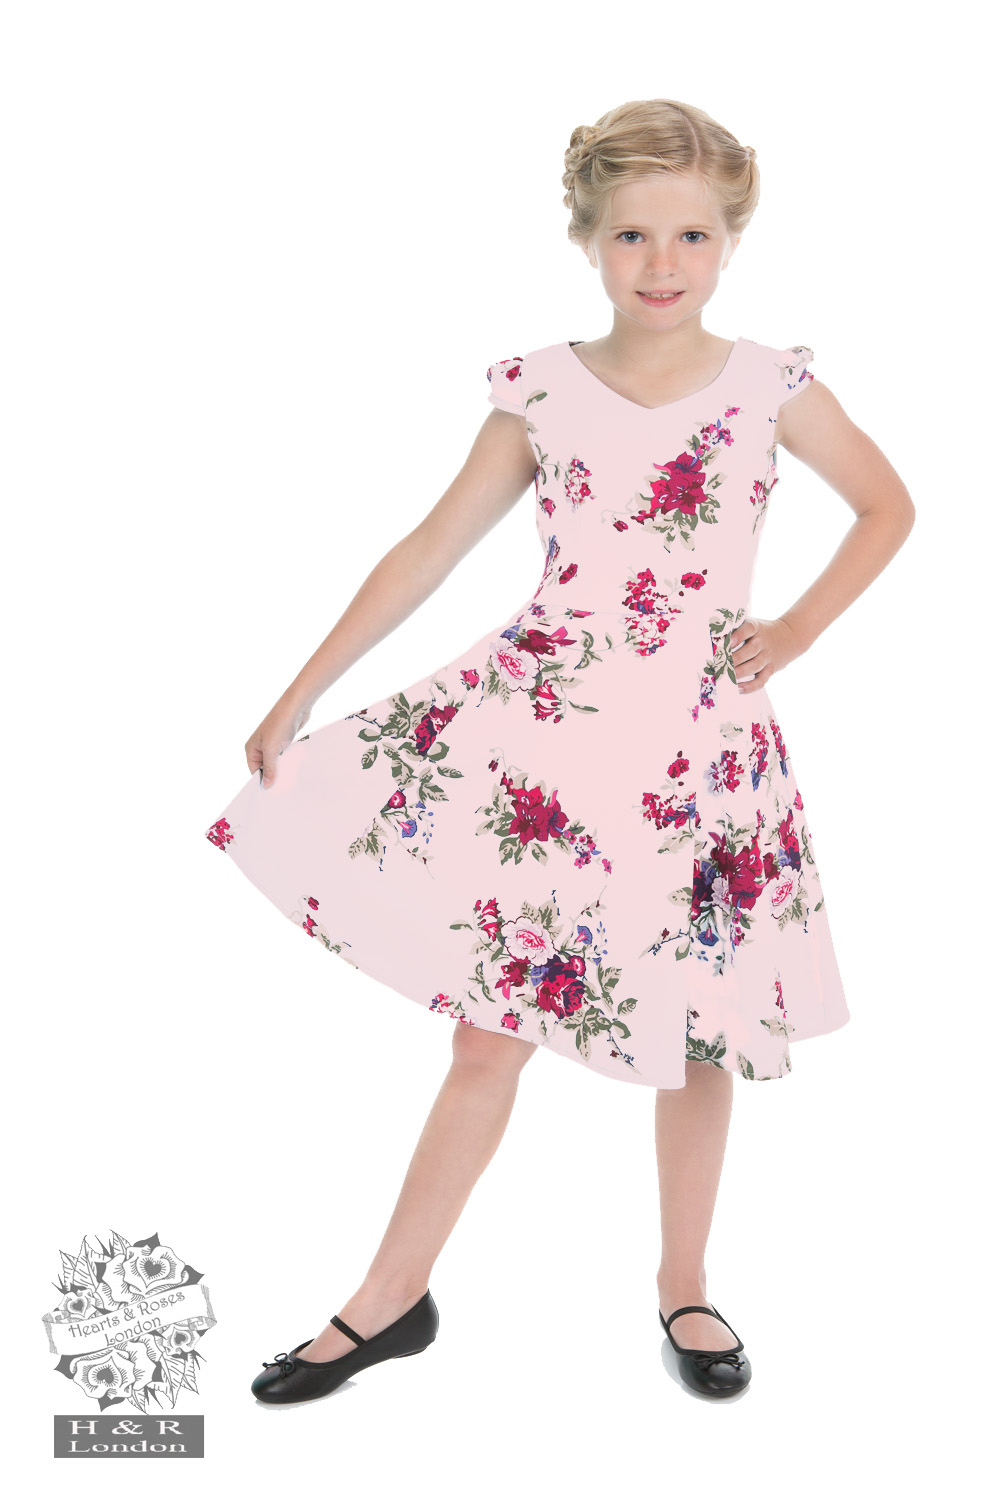 Girls Royal Ballet Tea Dress in Pink